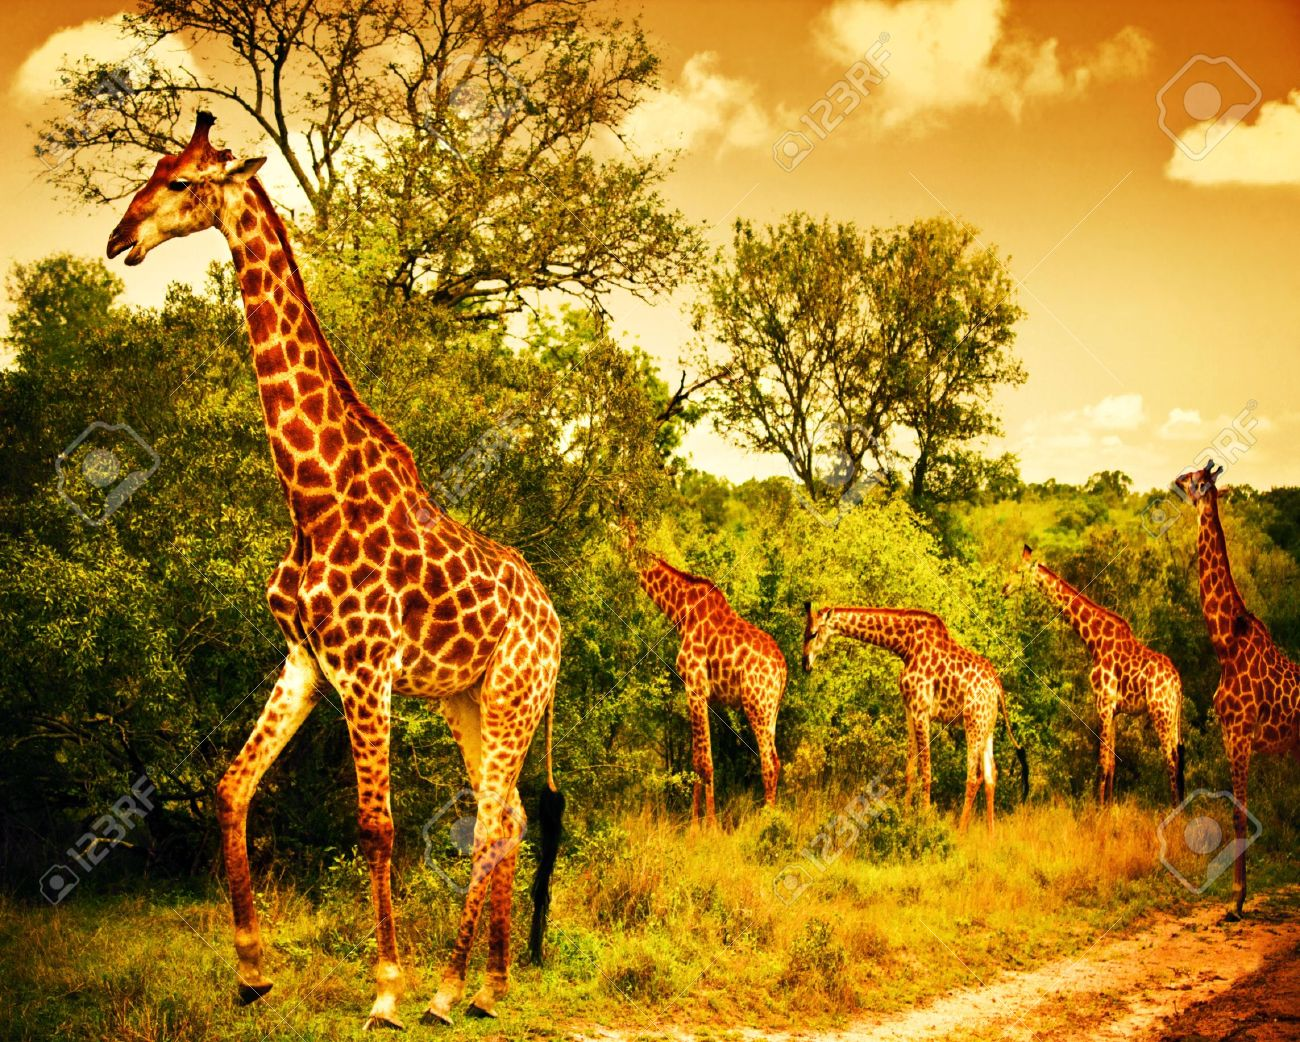 Image of a South African giraffes, big family graze in the wild forest, wildlife animals safari, Kruger National Park, bushes of Sabi Sand game drive reserve, beautiful nature of Africa continent Stock Photo - 15015777